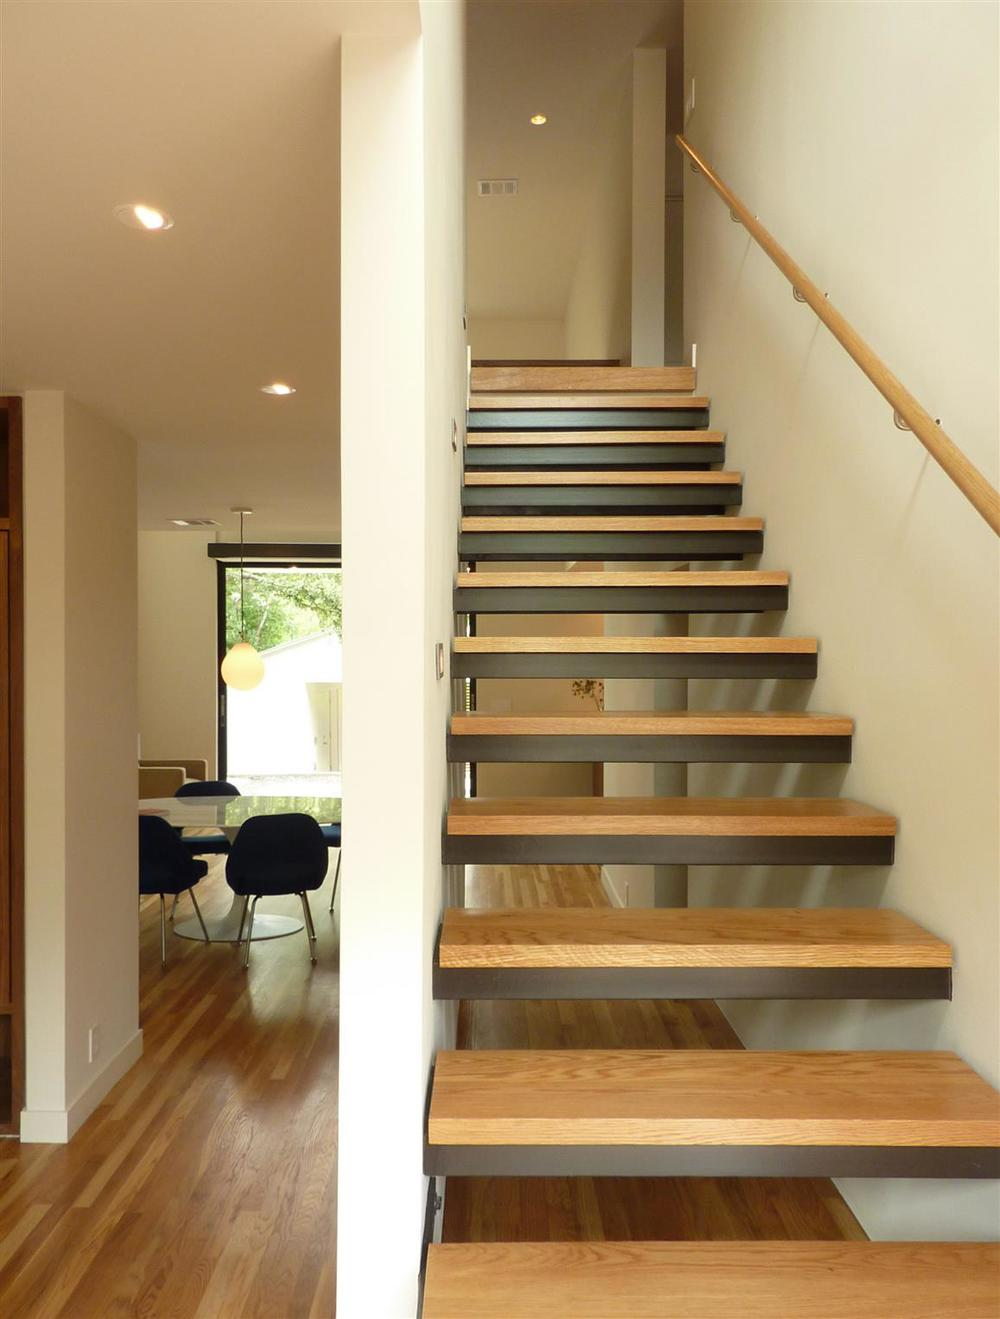 CHER_STAIR